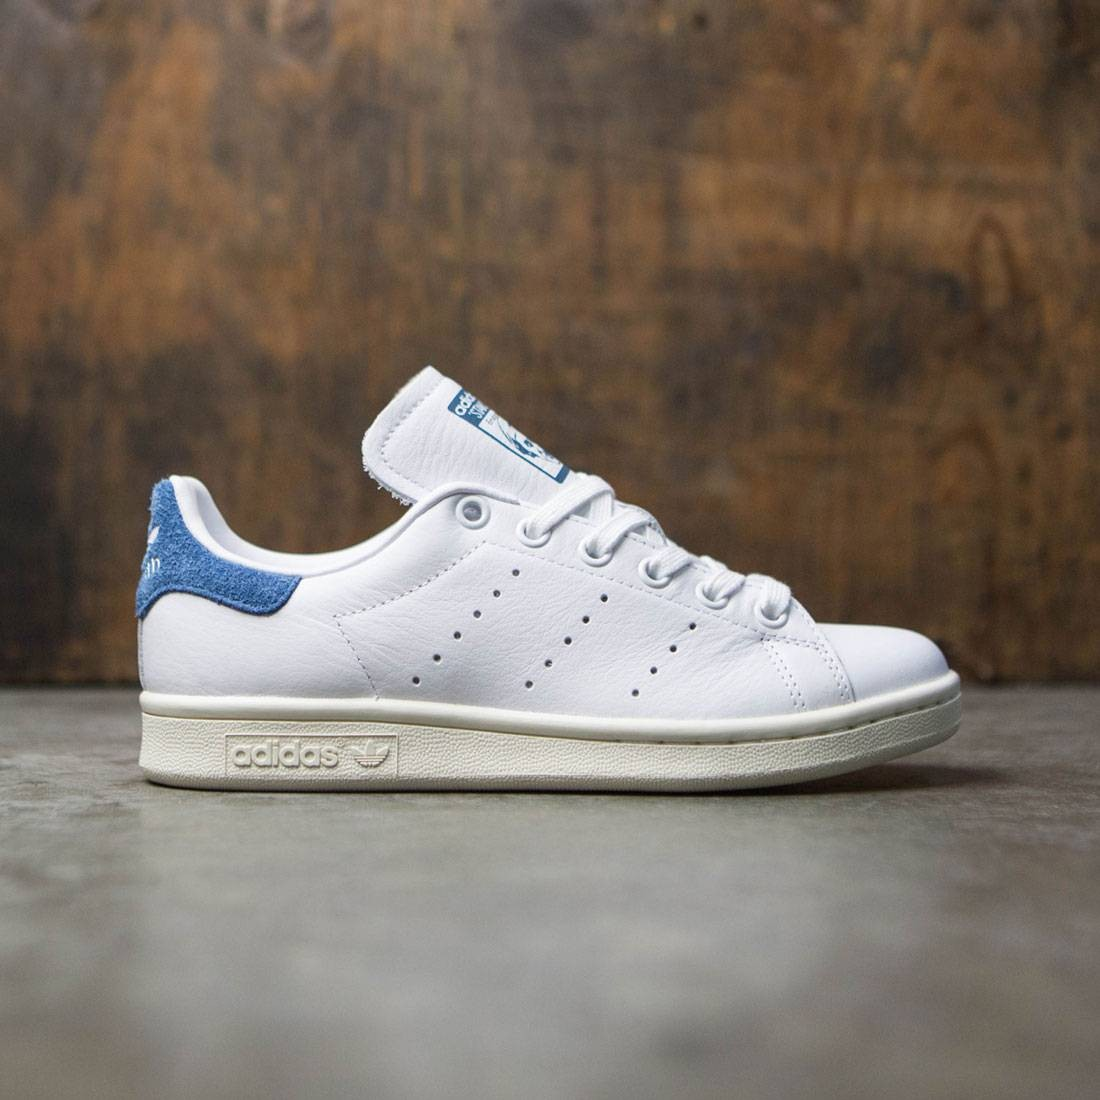 Buy blue stan smith adidas   OFF63% Discounted 62e1f516a